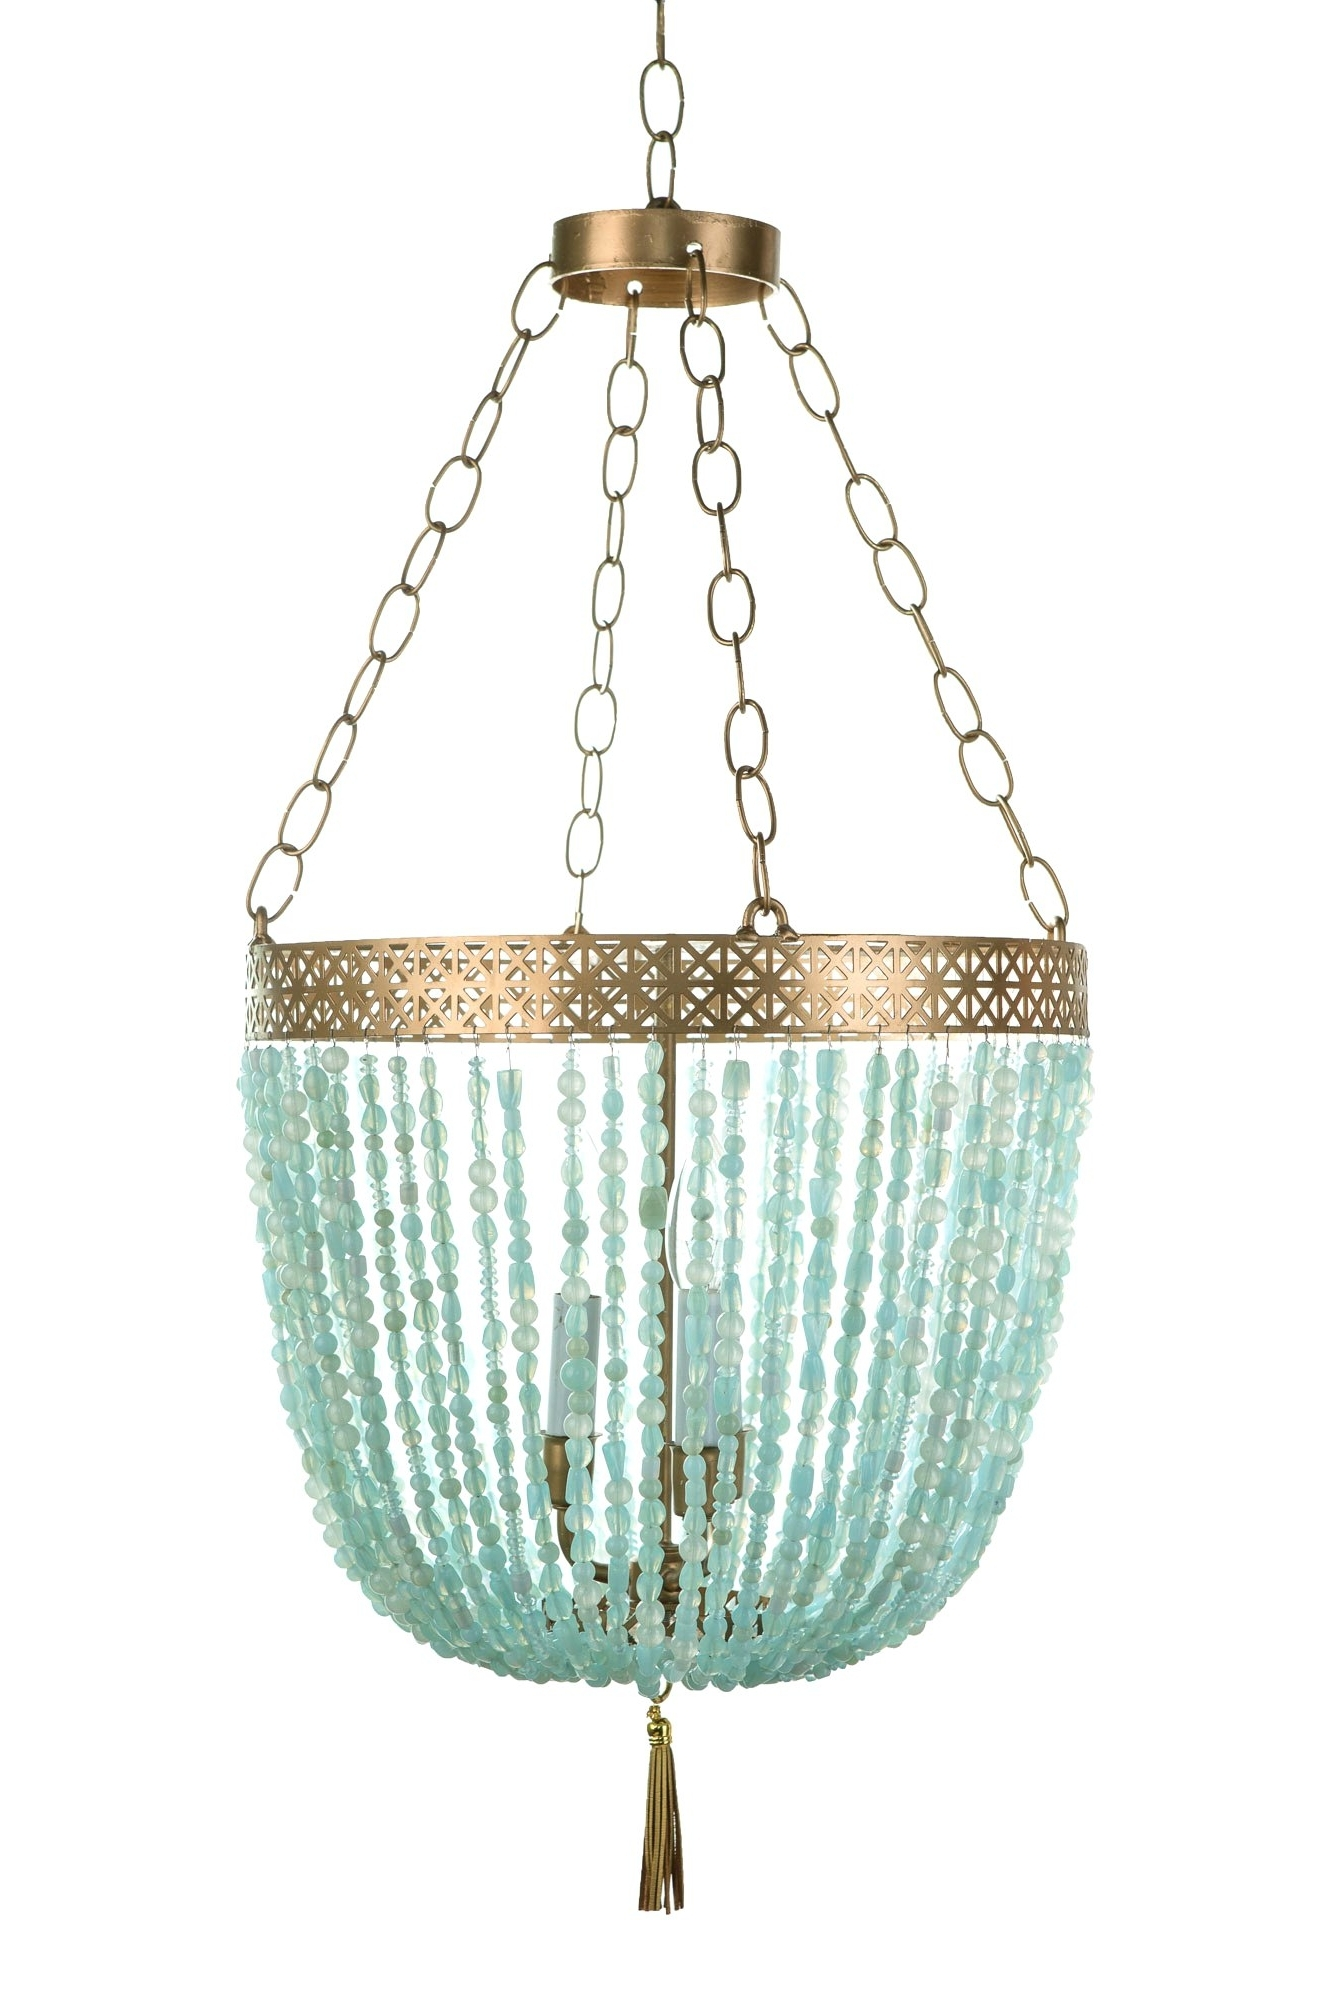 Chandeliers Design : Magnificent Stylish Repair Turquoise Chandelier Throughout 2017 Turquoise And Gold Chandeliers (View 7 of 15)